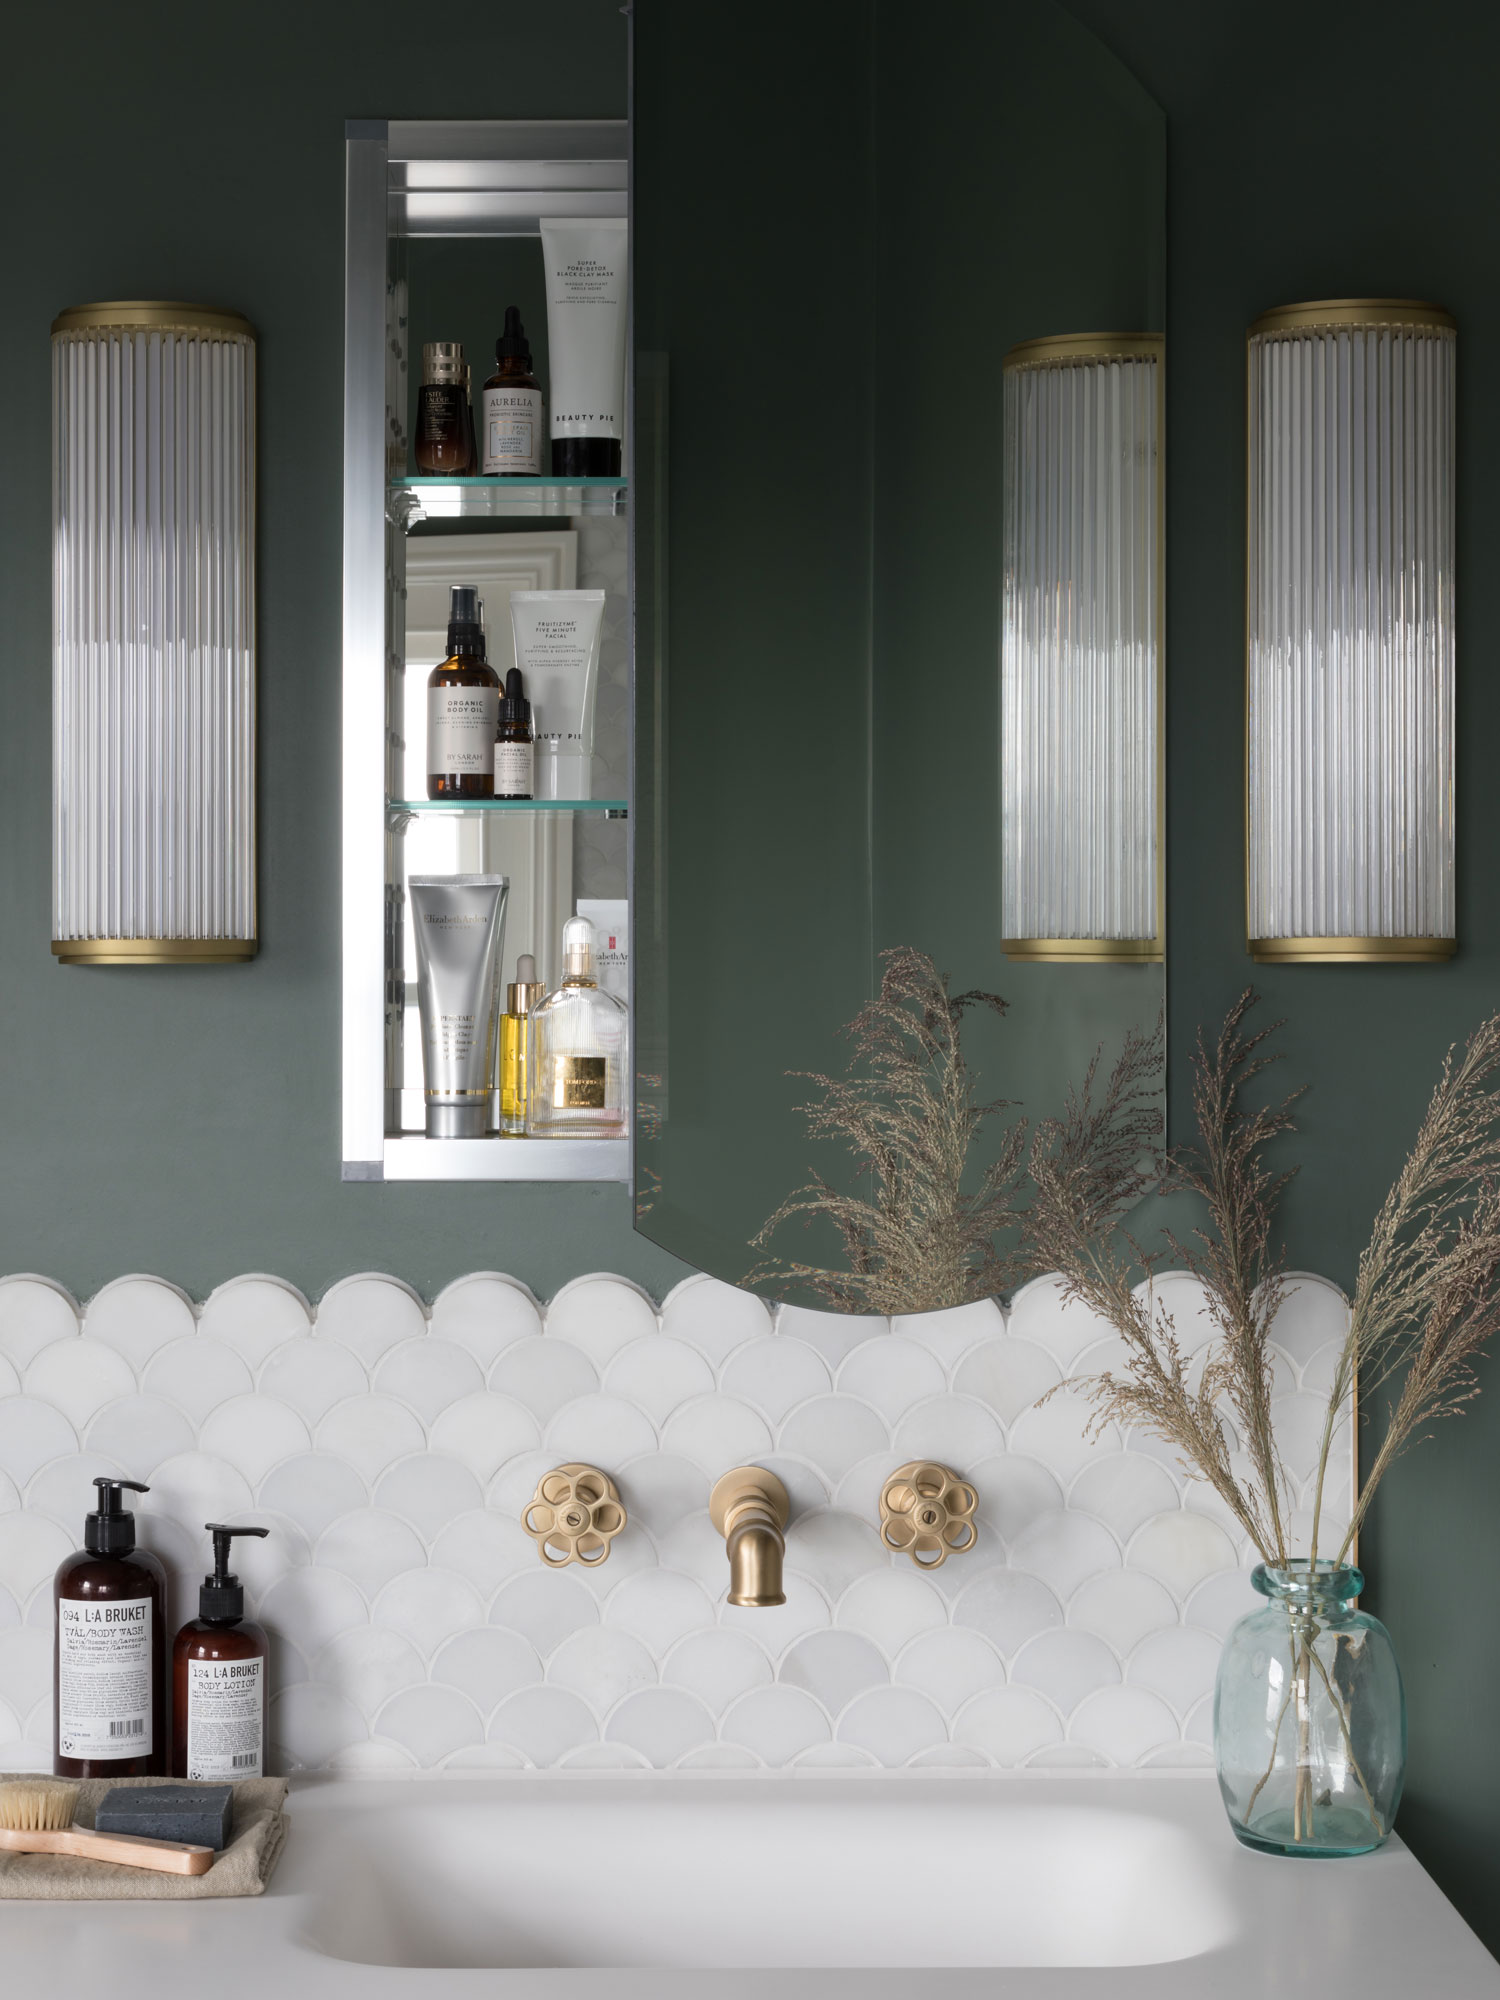 West One Bathrooms Inspiration How to plan storage in a bathroom image1a